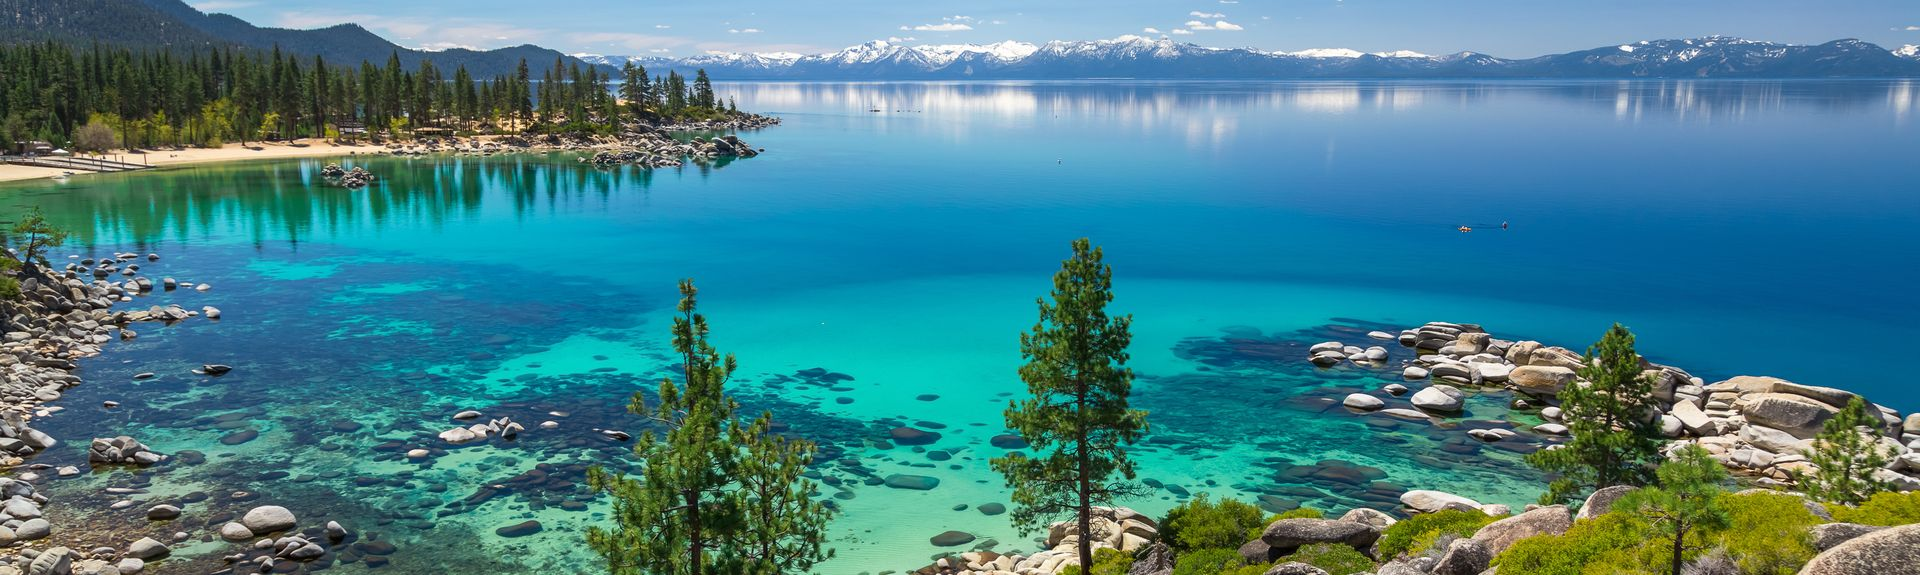 Meyers, South Lake Tahoe, Californie, États-Unis d'Amérique